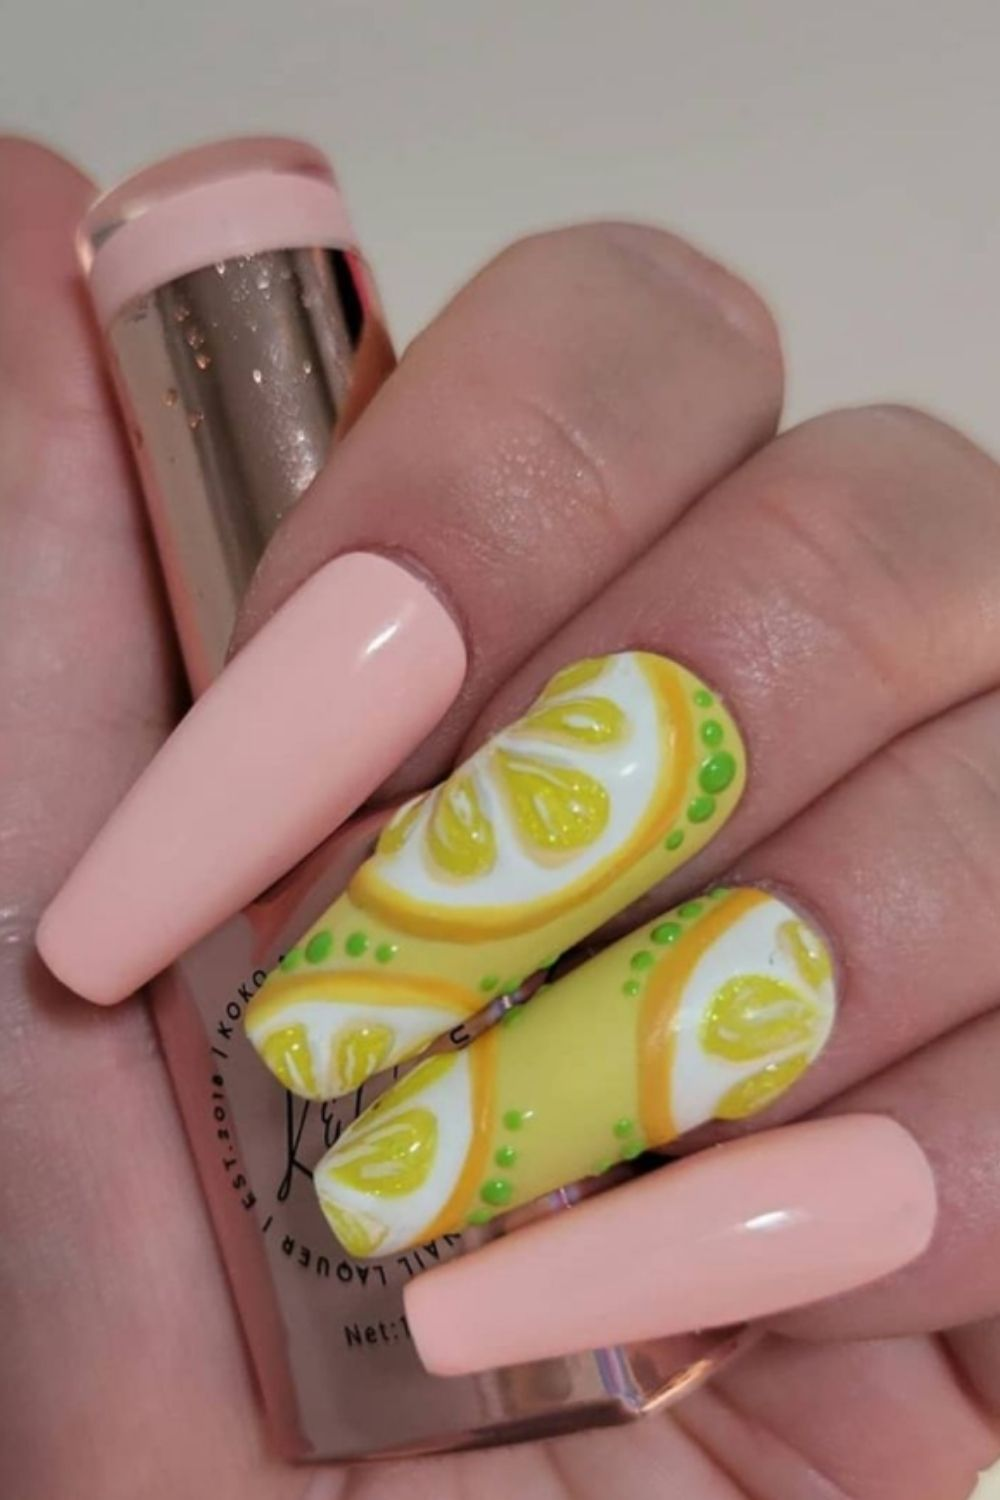 Pink and yellow coffin nail with lemon